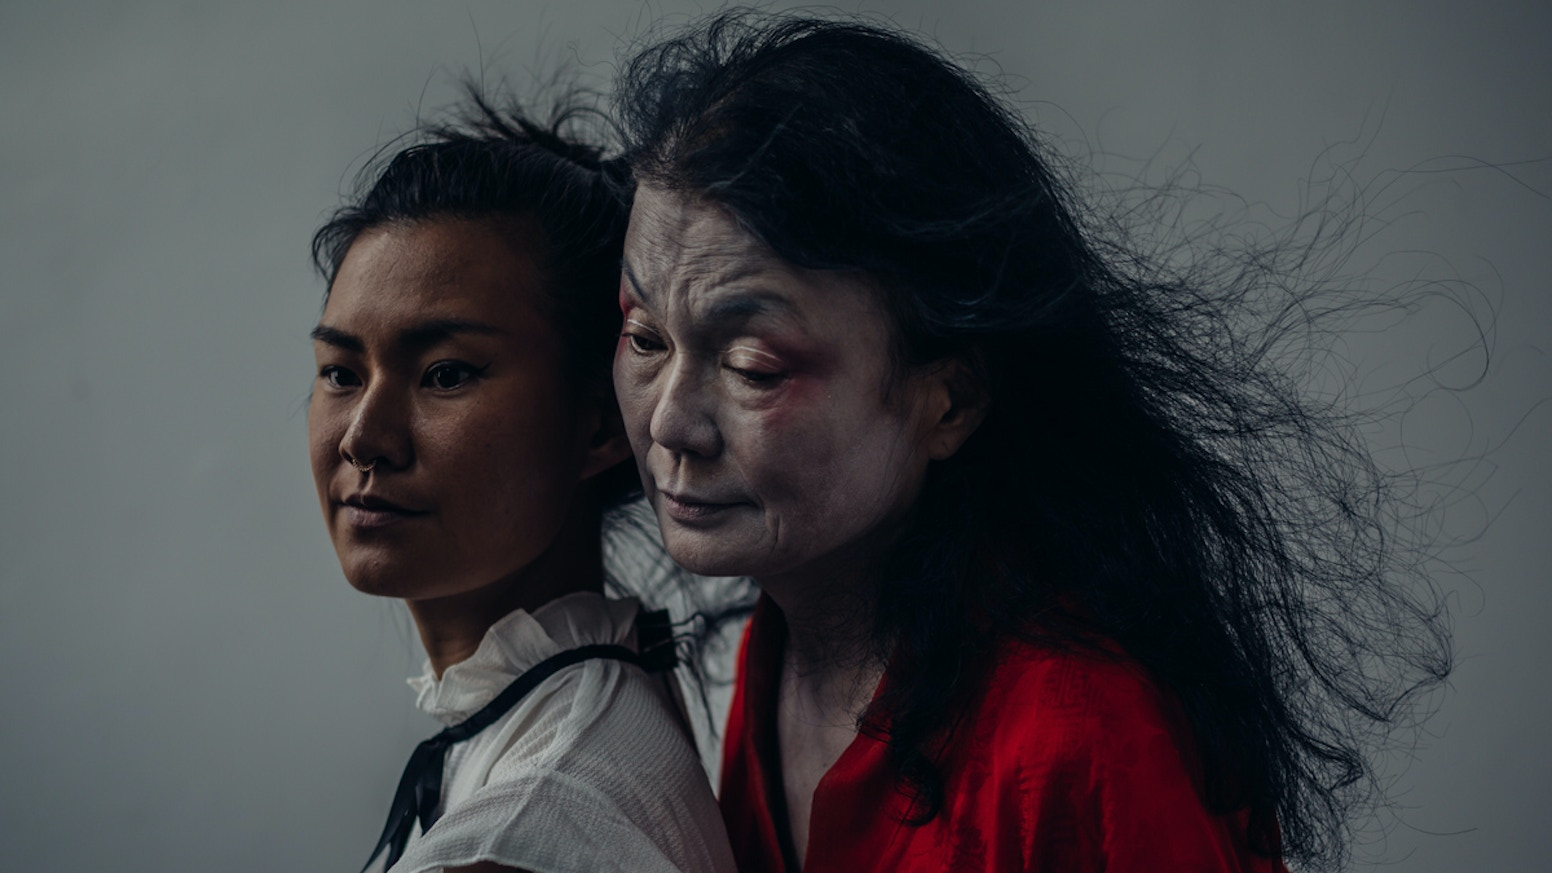 Help us close the gap for Suicide Forest, a bilingual nightmare play premiering in Feb 2019 in NYC. 皆さまの温かいご支援とご協力よろしくお願いします!